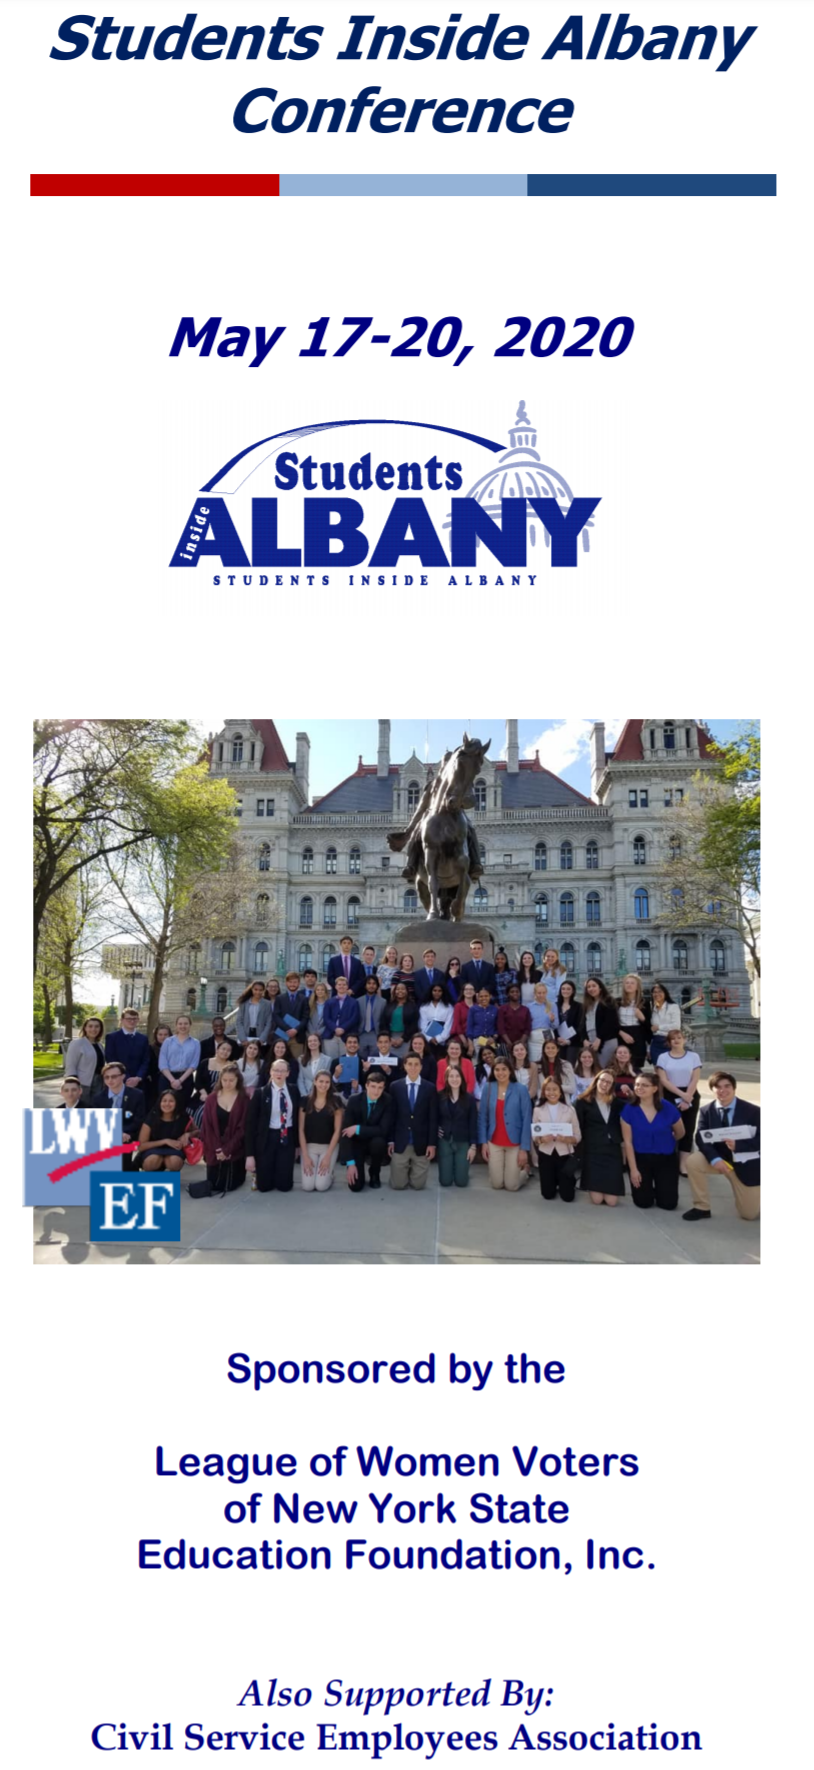 Students Inside Albany Conference